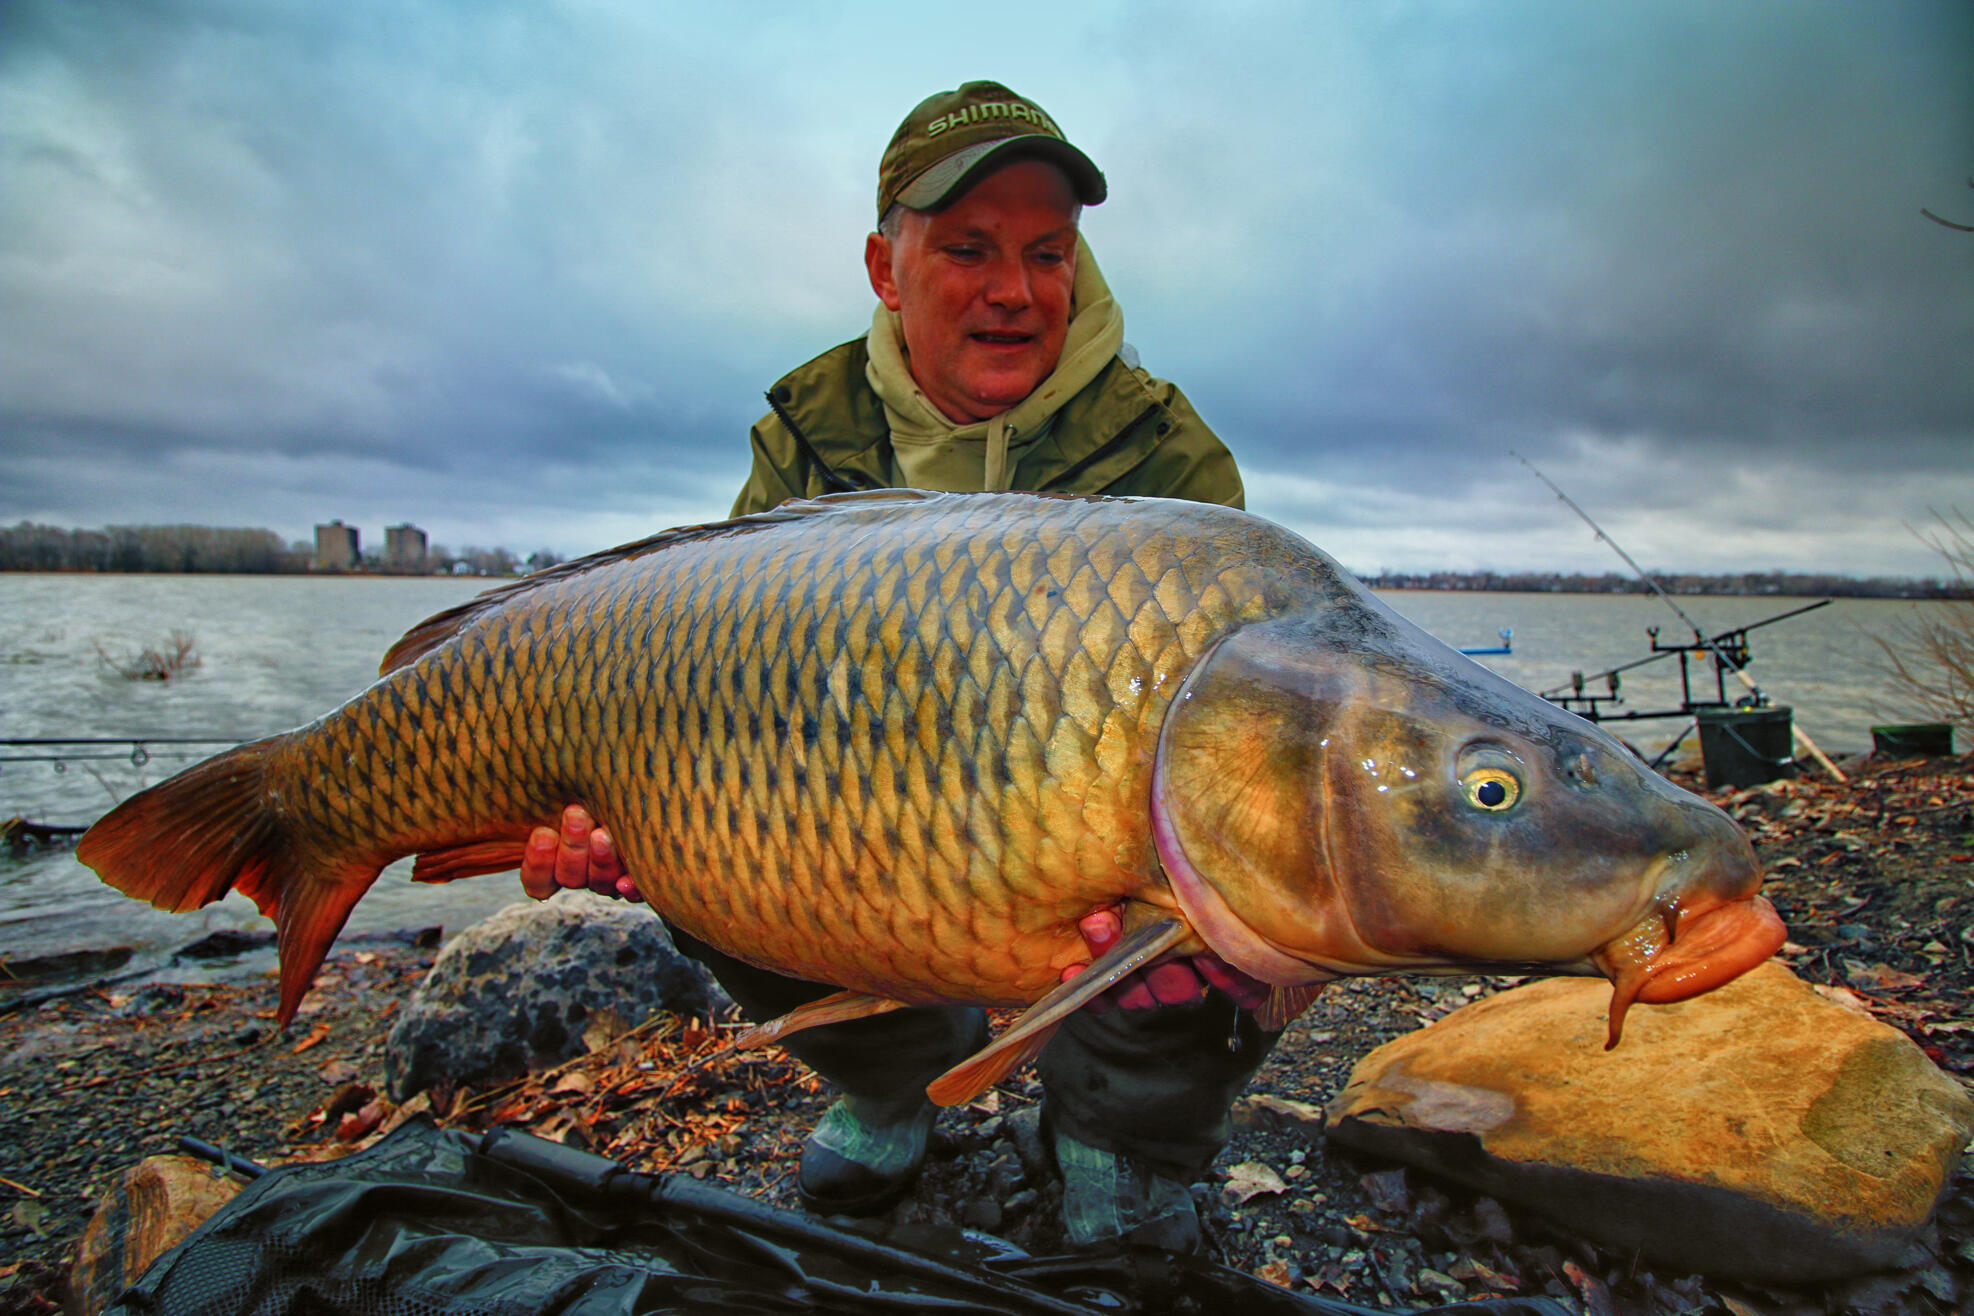 World class carp fishing in ontario with len perdic and for Carp fish pictures